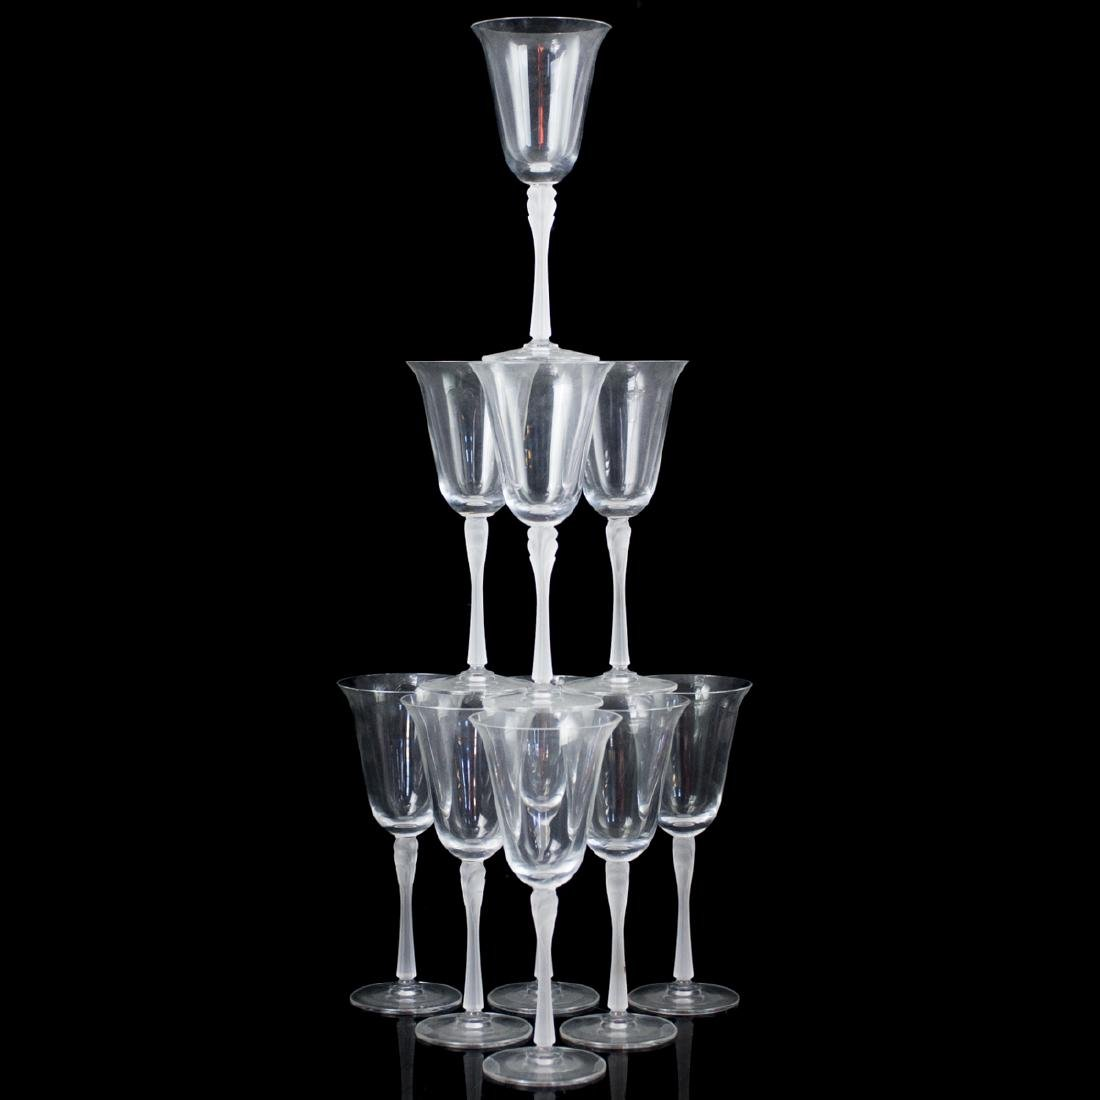 Lalique Style Frosted Crystal Wine Glasses